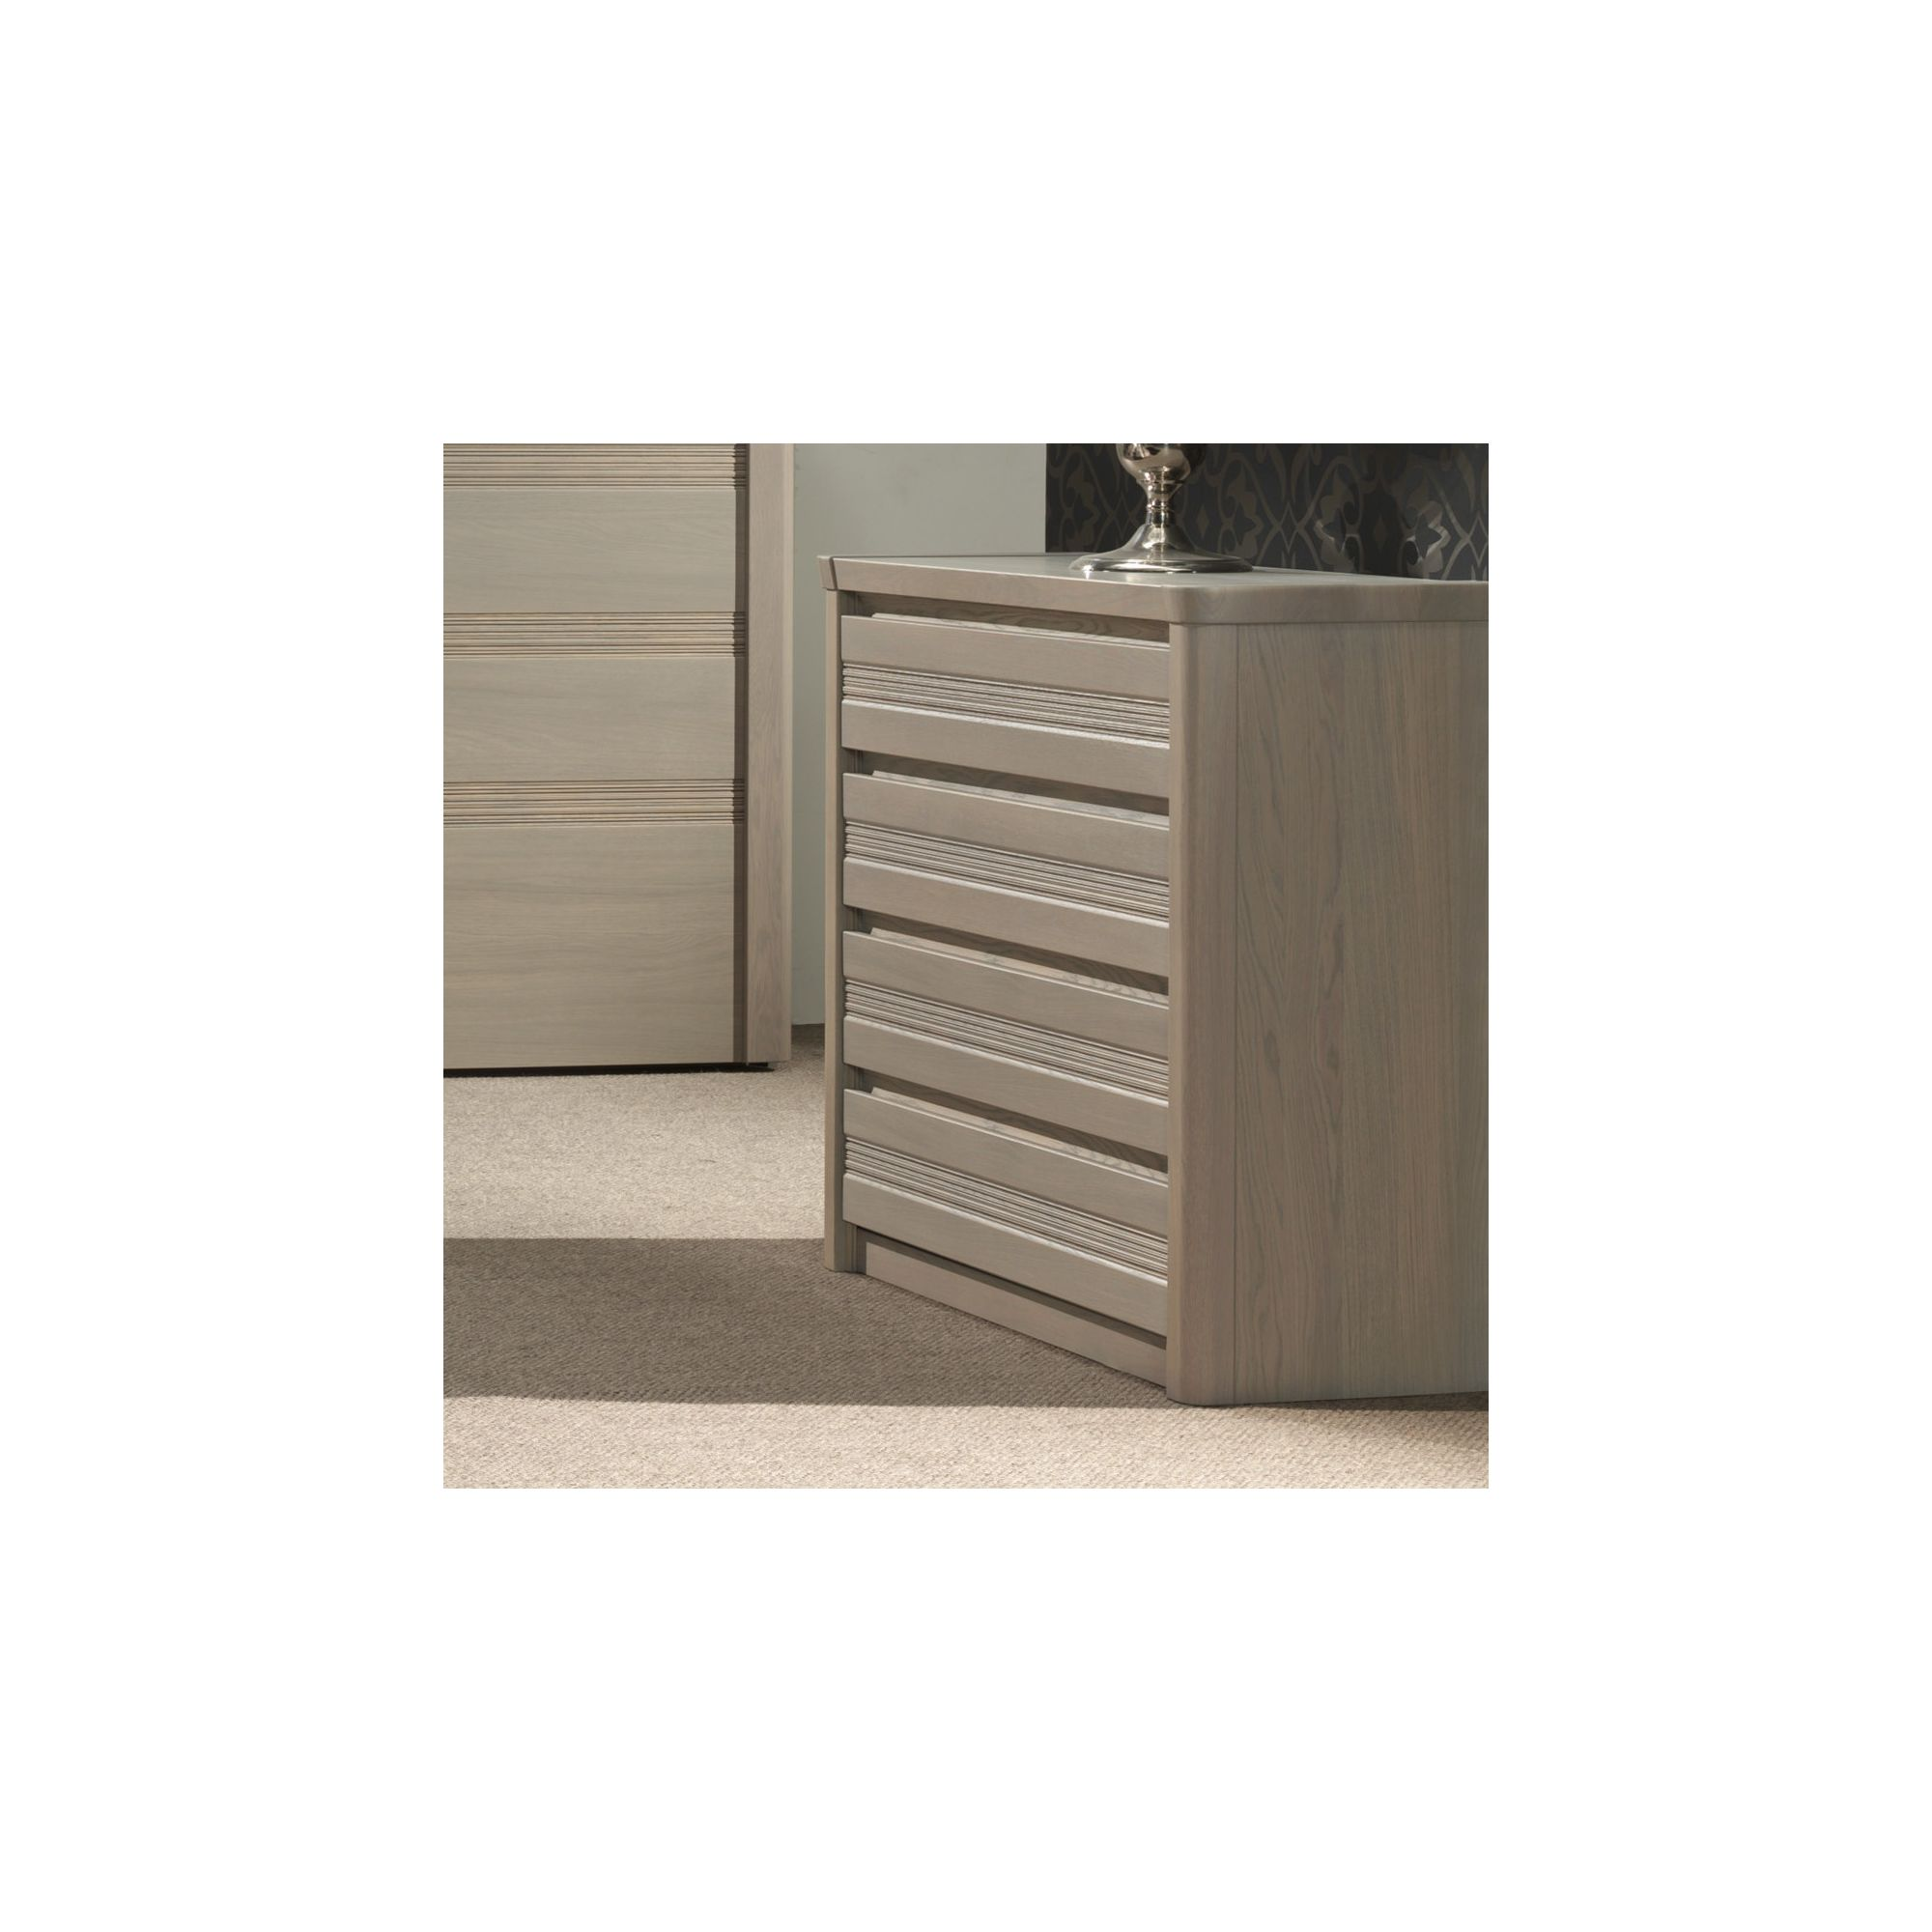 Sleepline Mundo 4 Drawers Chest - Grey Mat Lacquered at Tesco Direct